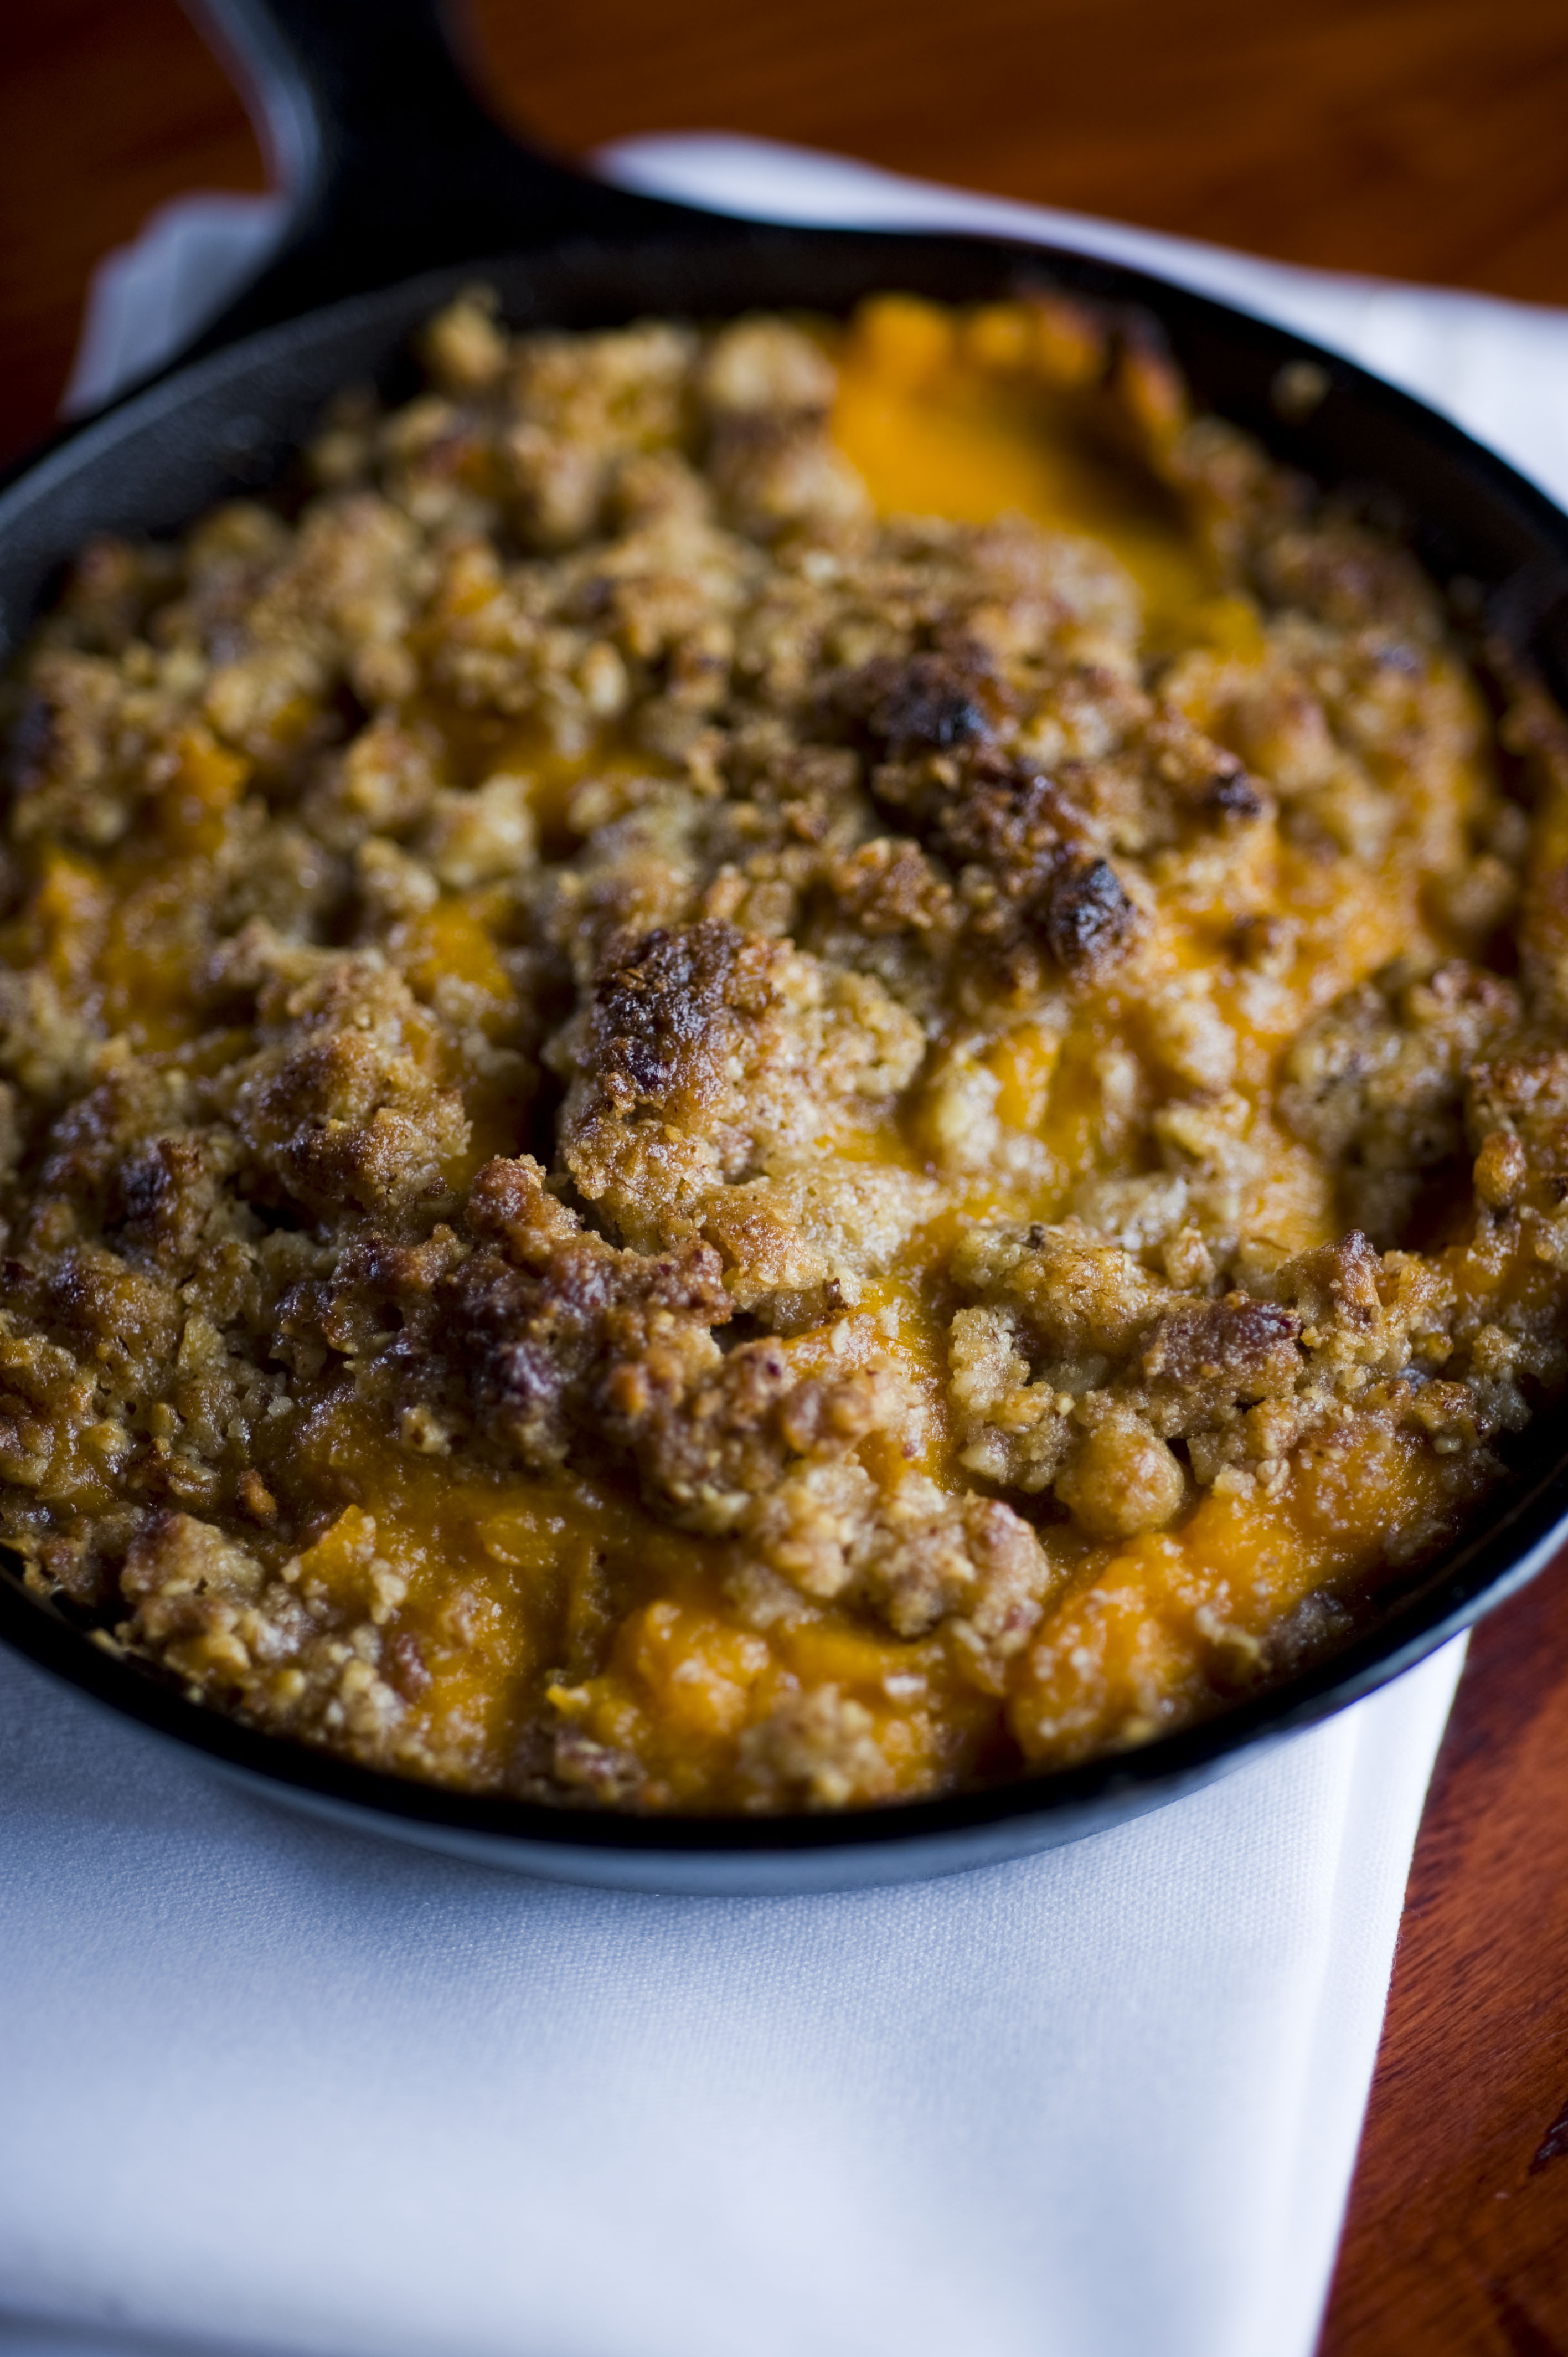 Del Frisco's_Sweet Potato Casserole